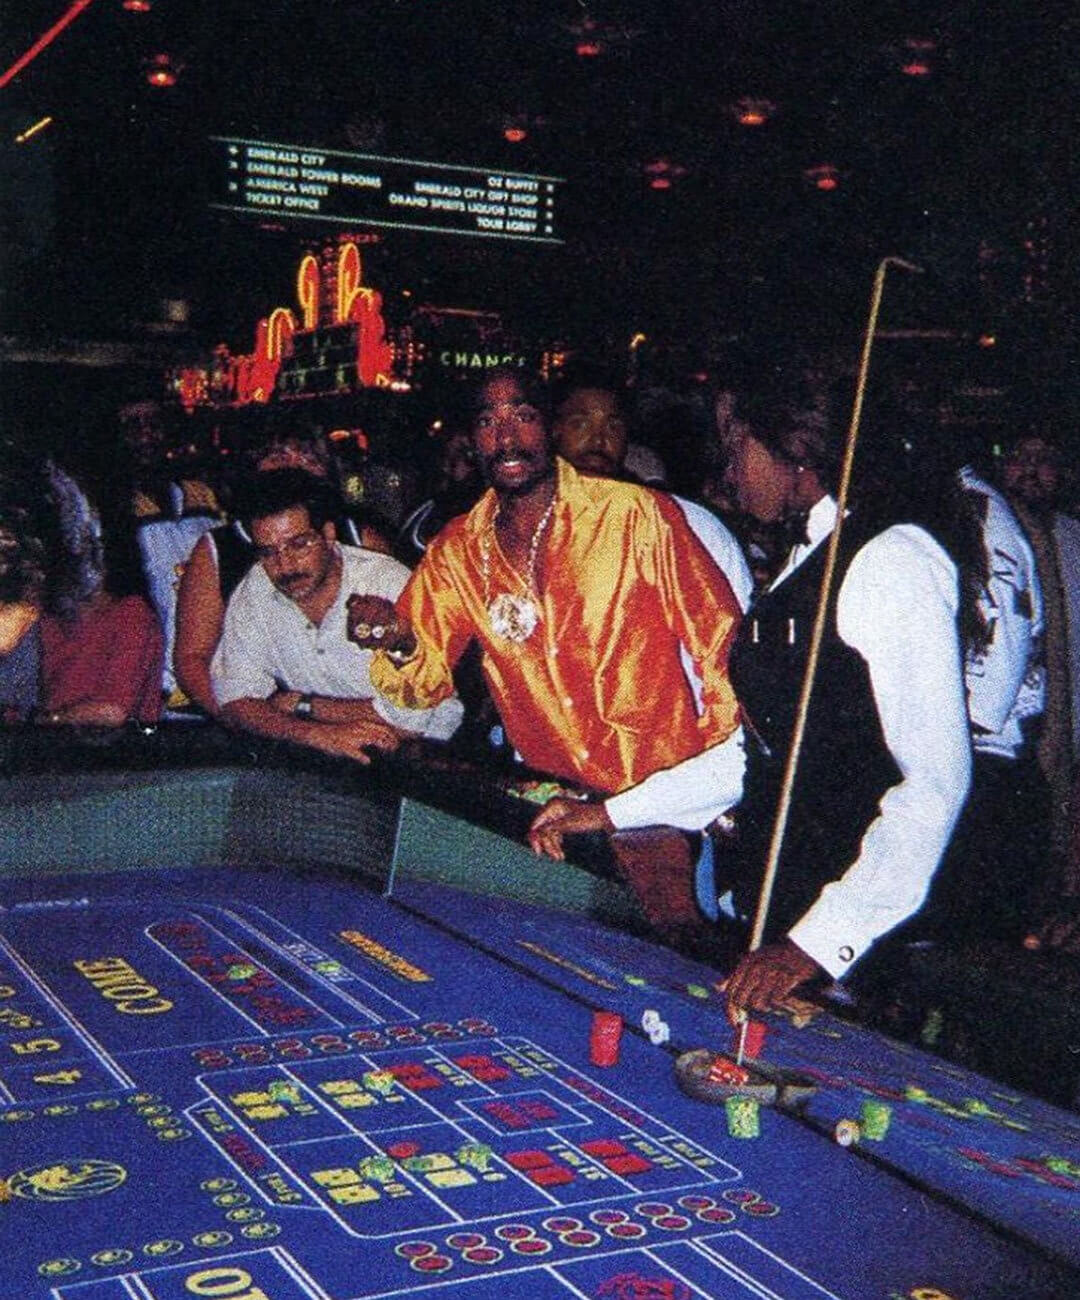 Tupac in the MGM Grand casino on September 7, 1996.